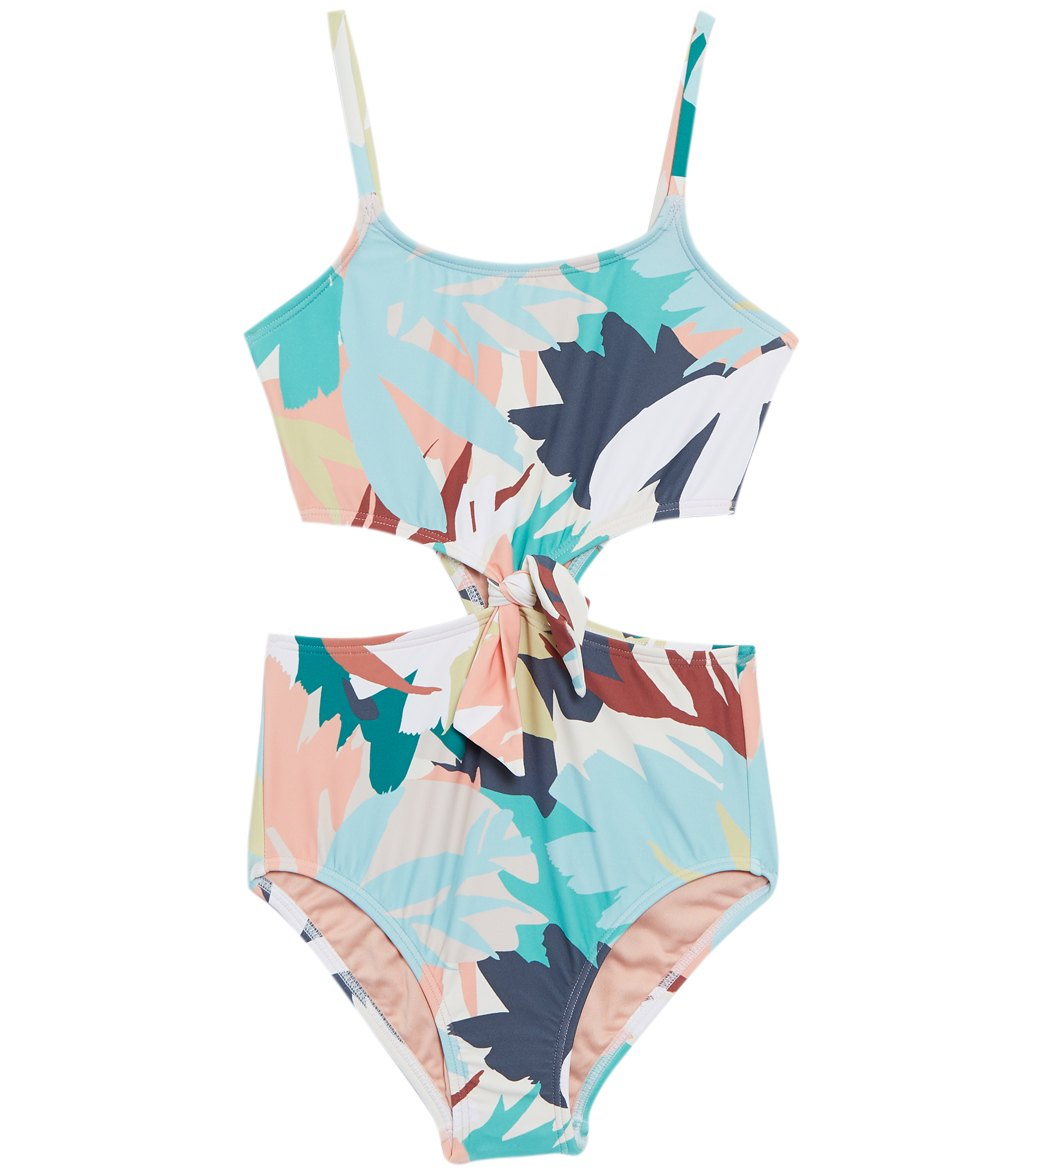 4461a1880b86 O'Neill Girls' Atlas Knot One Piece Swimsuit (Little Kid, Big Kid) at  SwimOutlet.com - Free Shipping